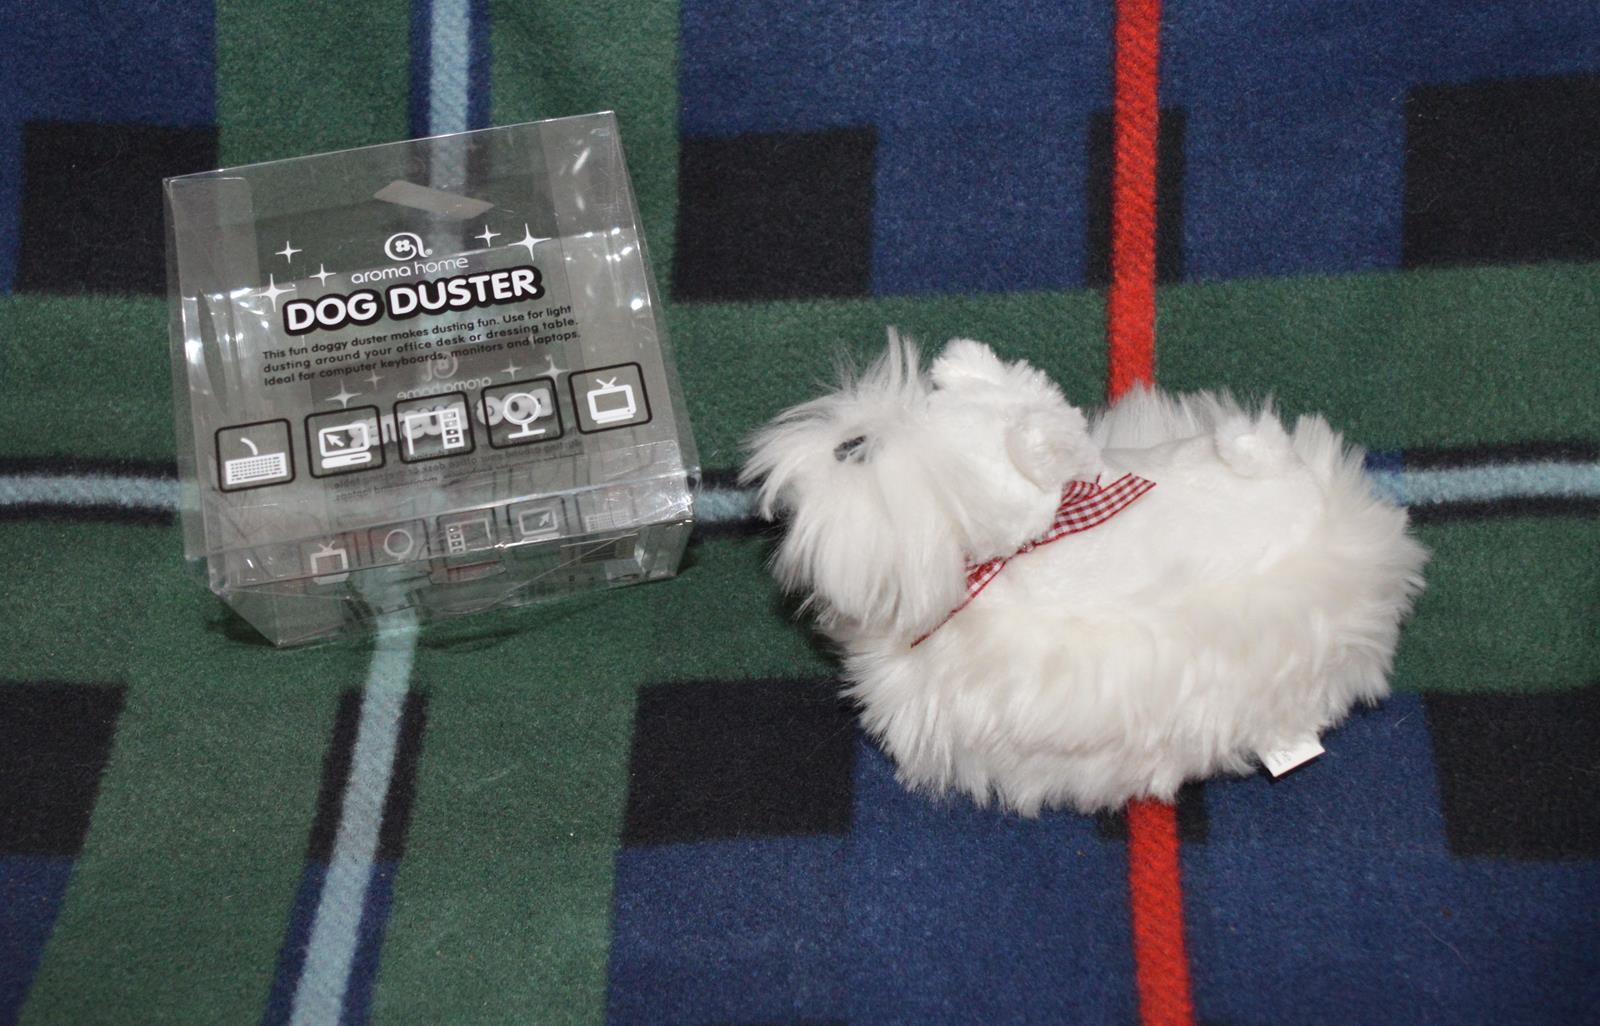 Dog Duster